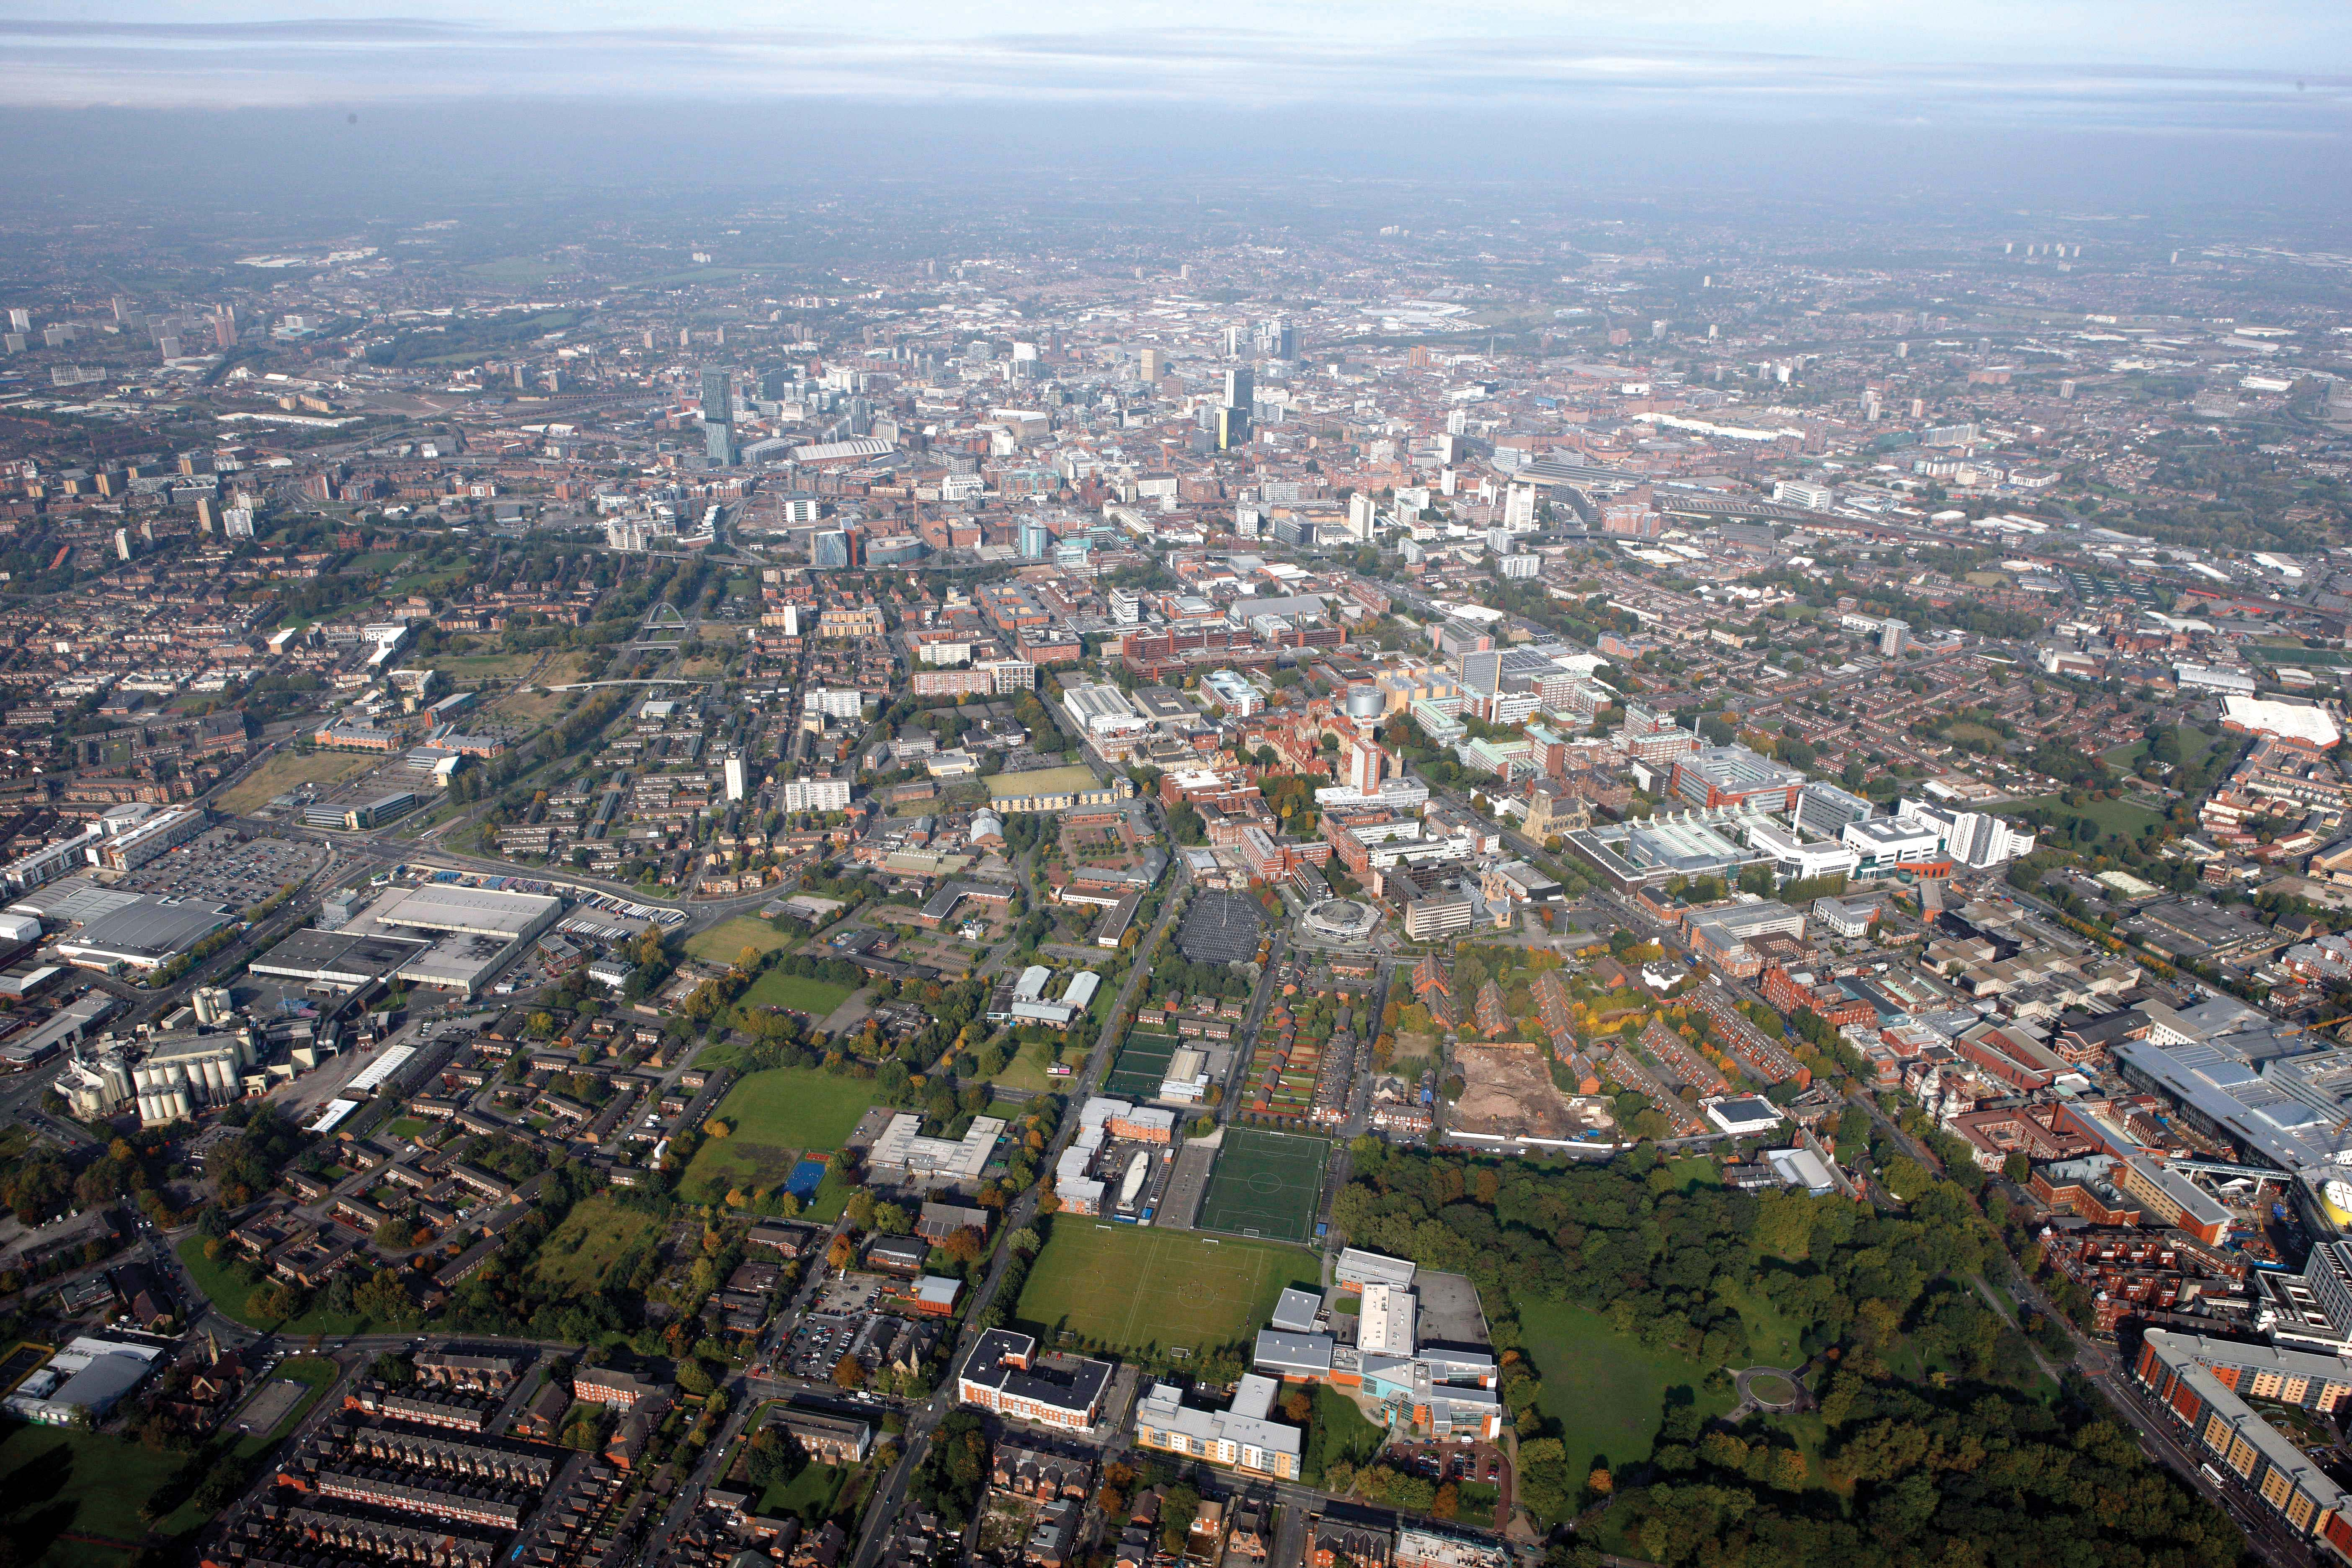 Manchester from above - photo from Daniel Nisbit via Flickr